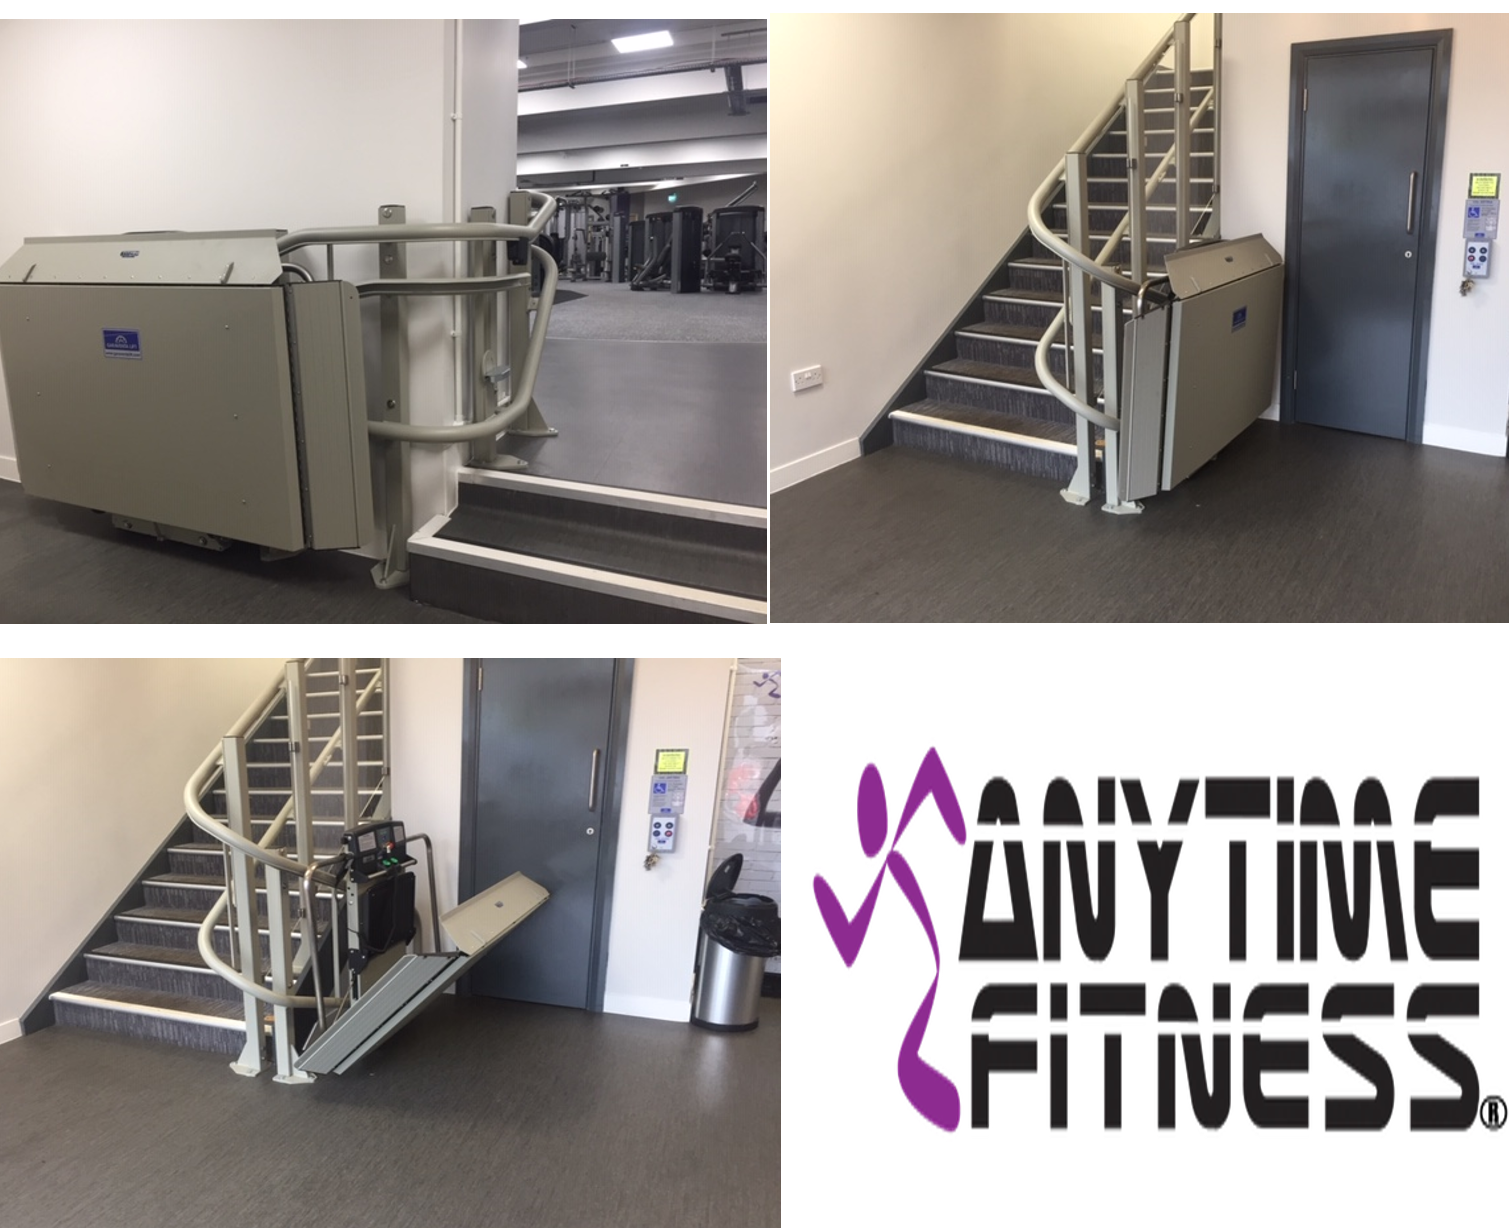 platform stairlifts in anytime fitness by Titan new lifts